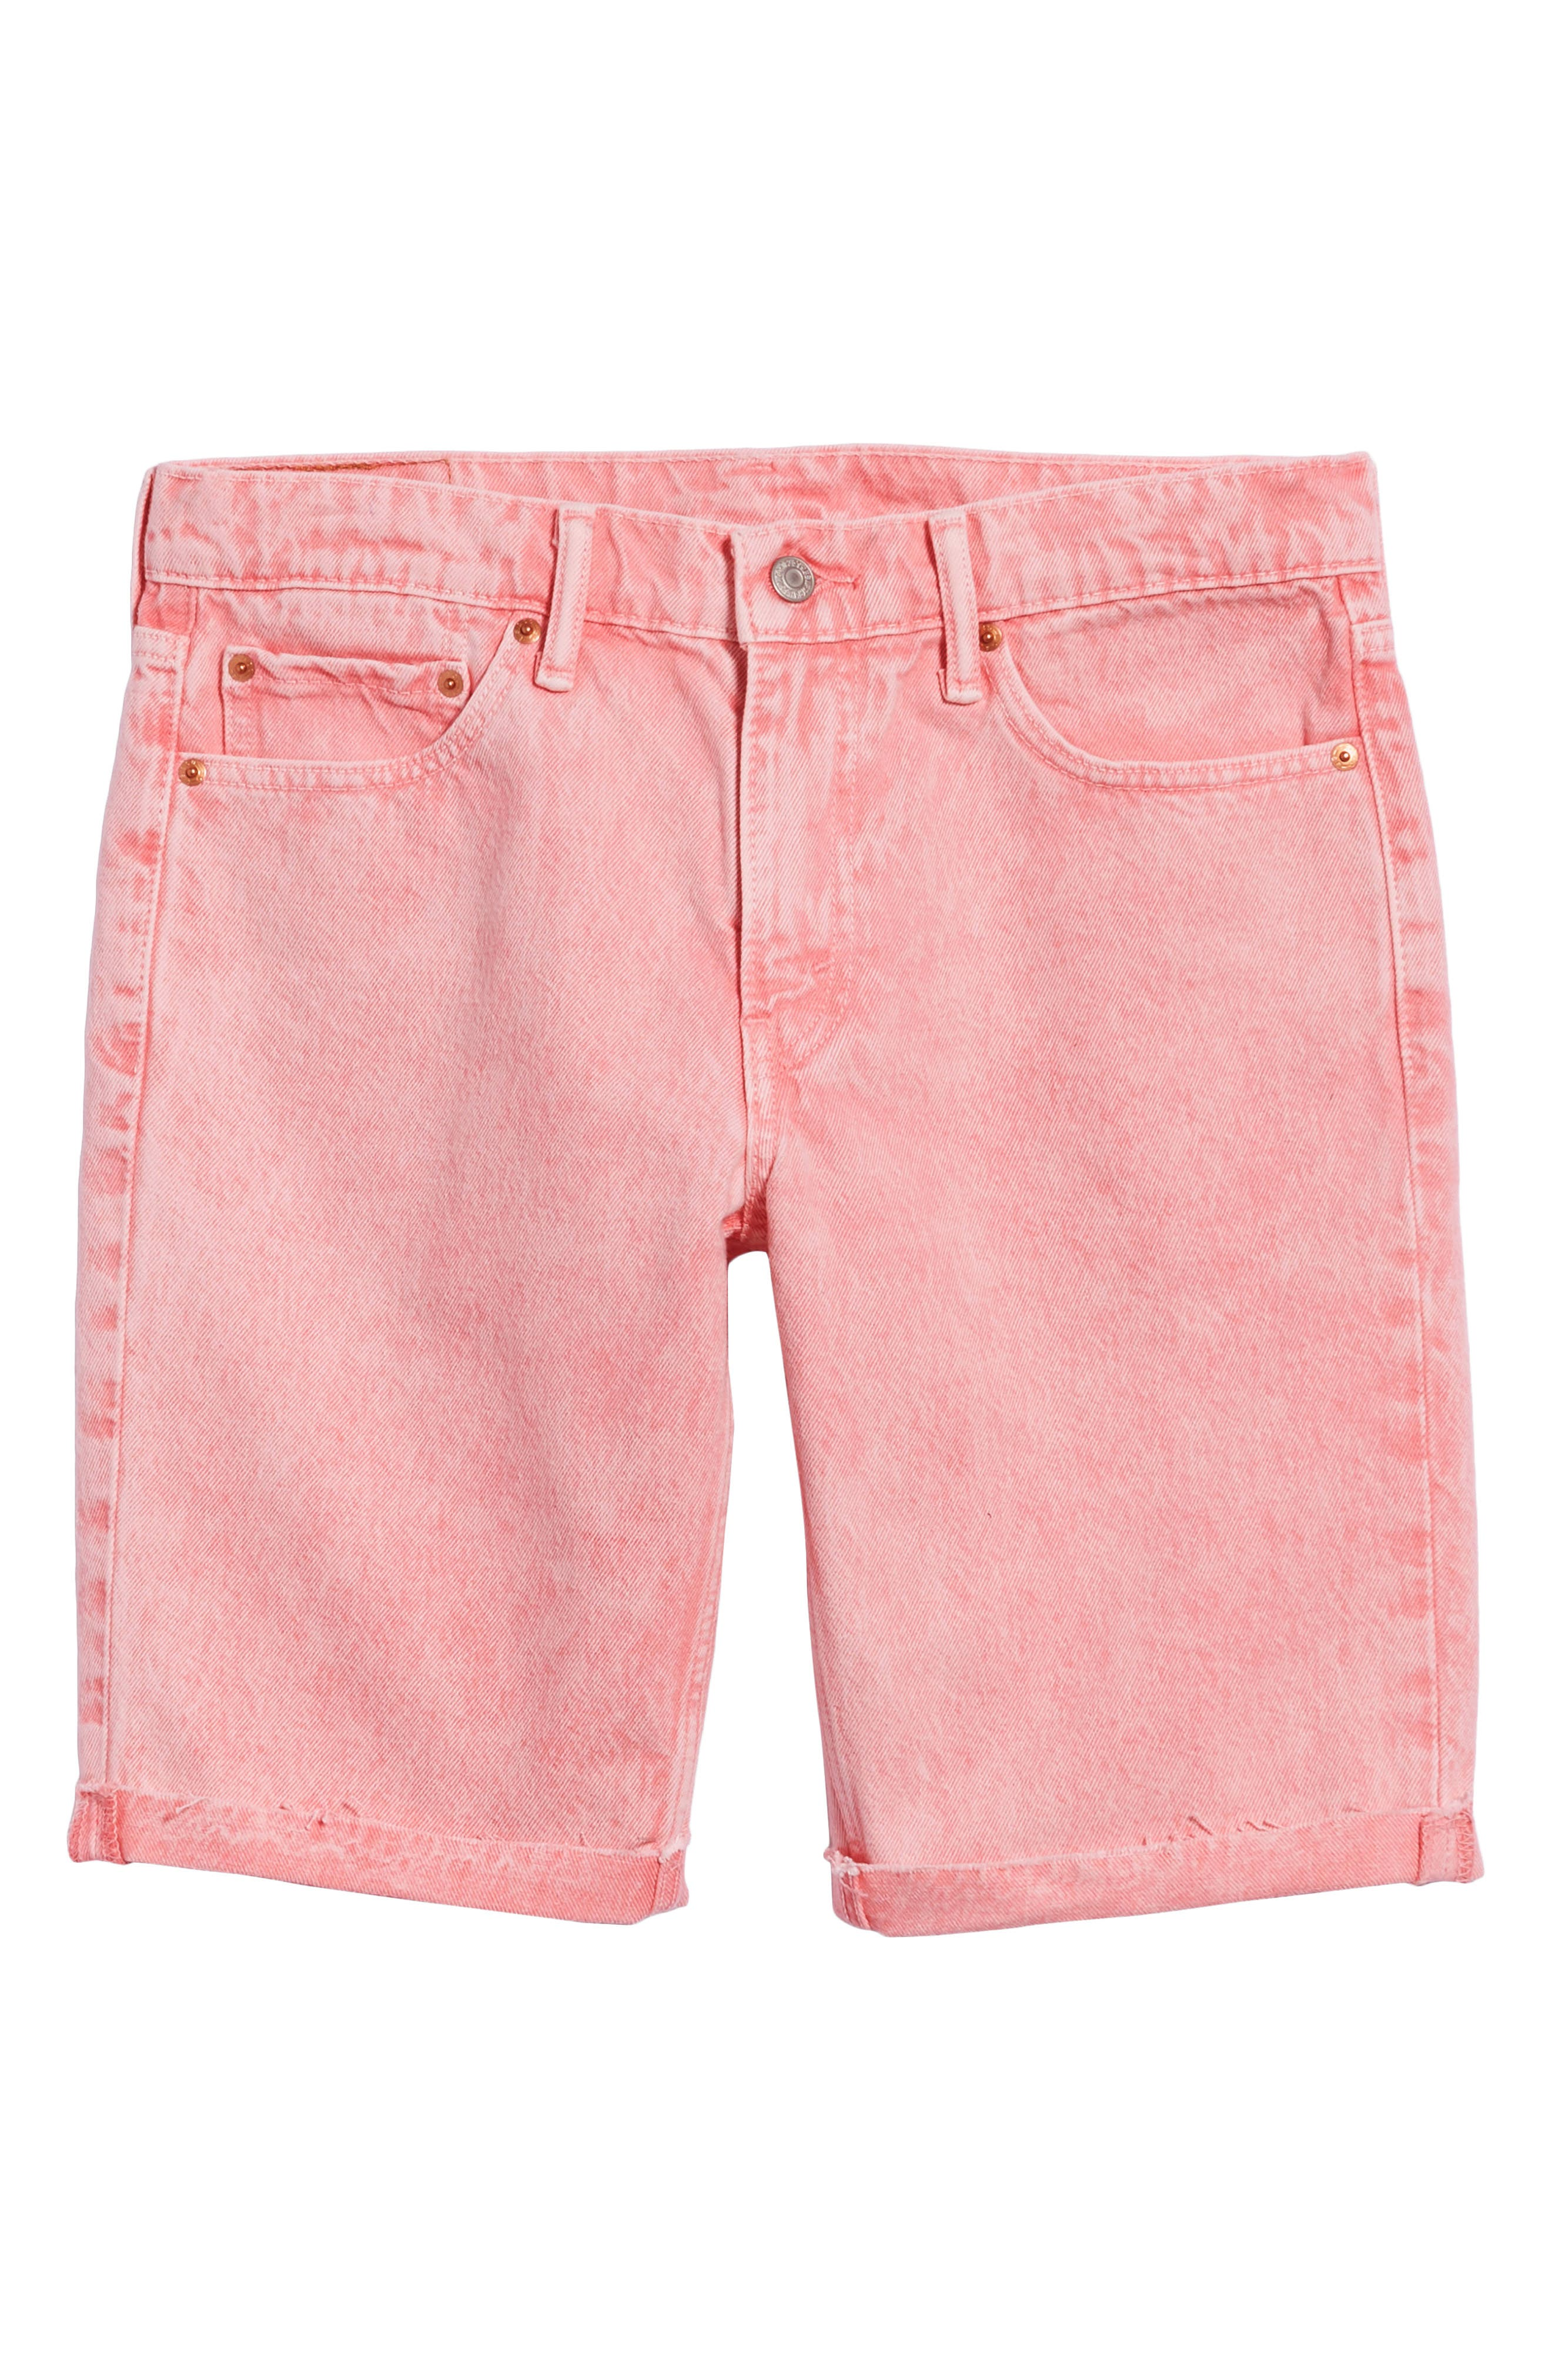 511<sup>™</sup> Cutoff Denim Shorts,                             Alternate thumbnail 6, color,                             Glinda Short